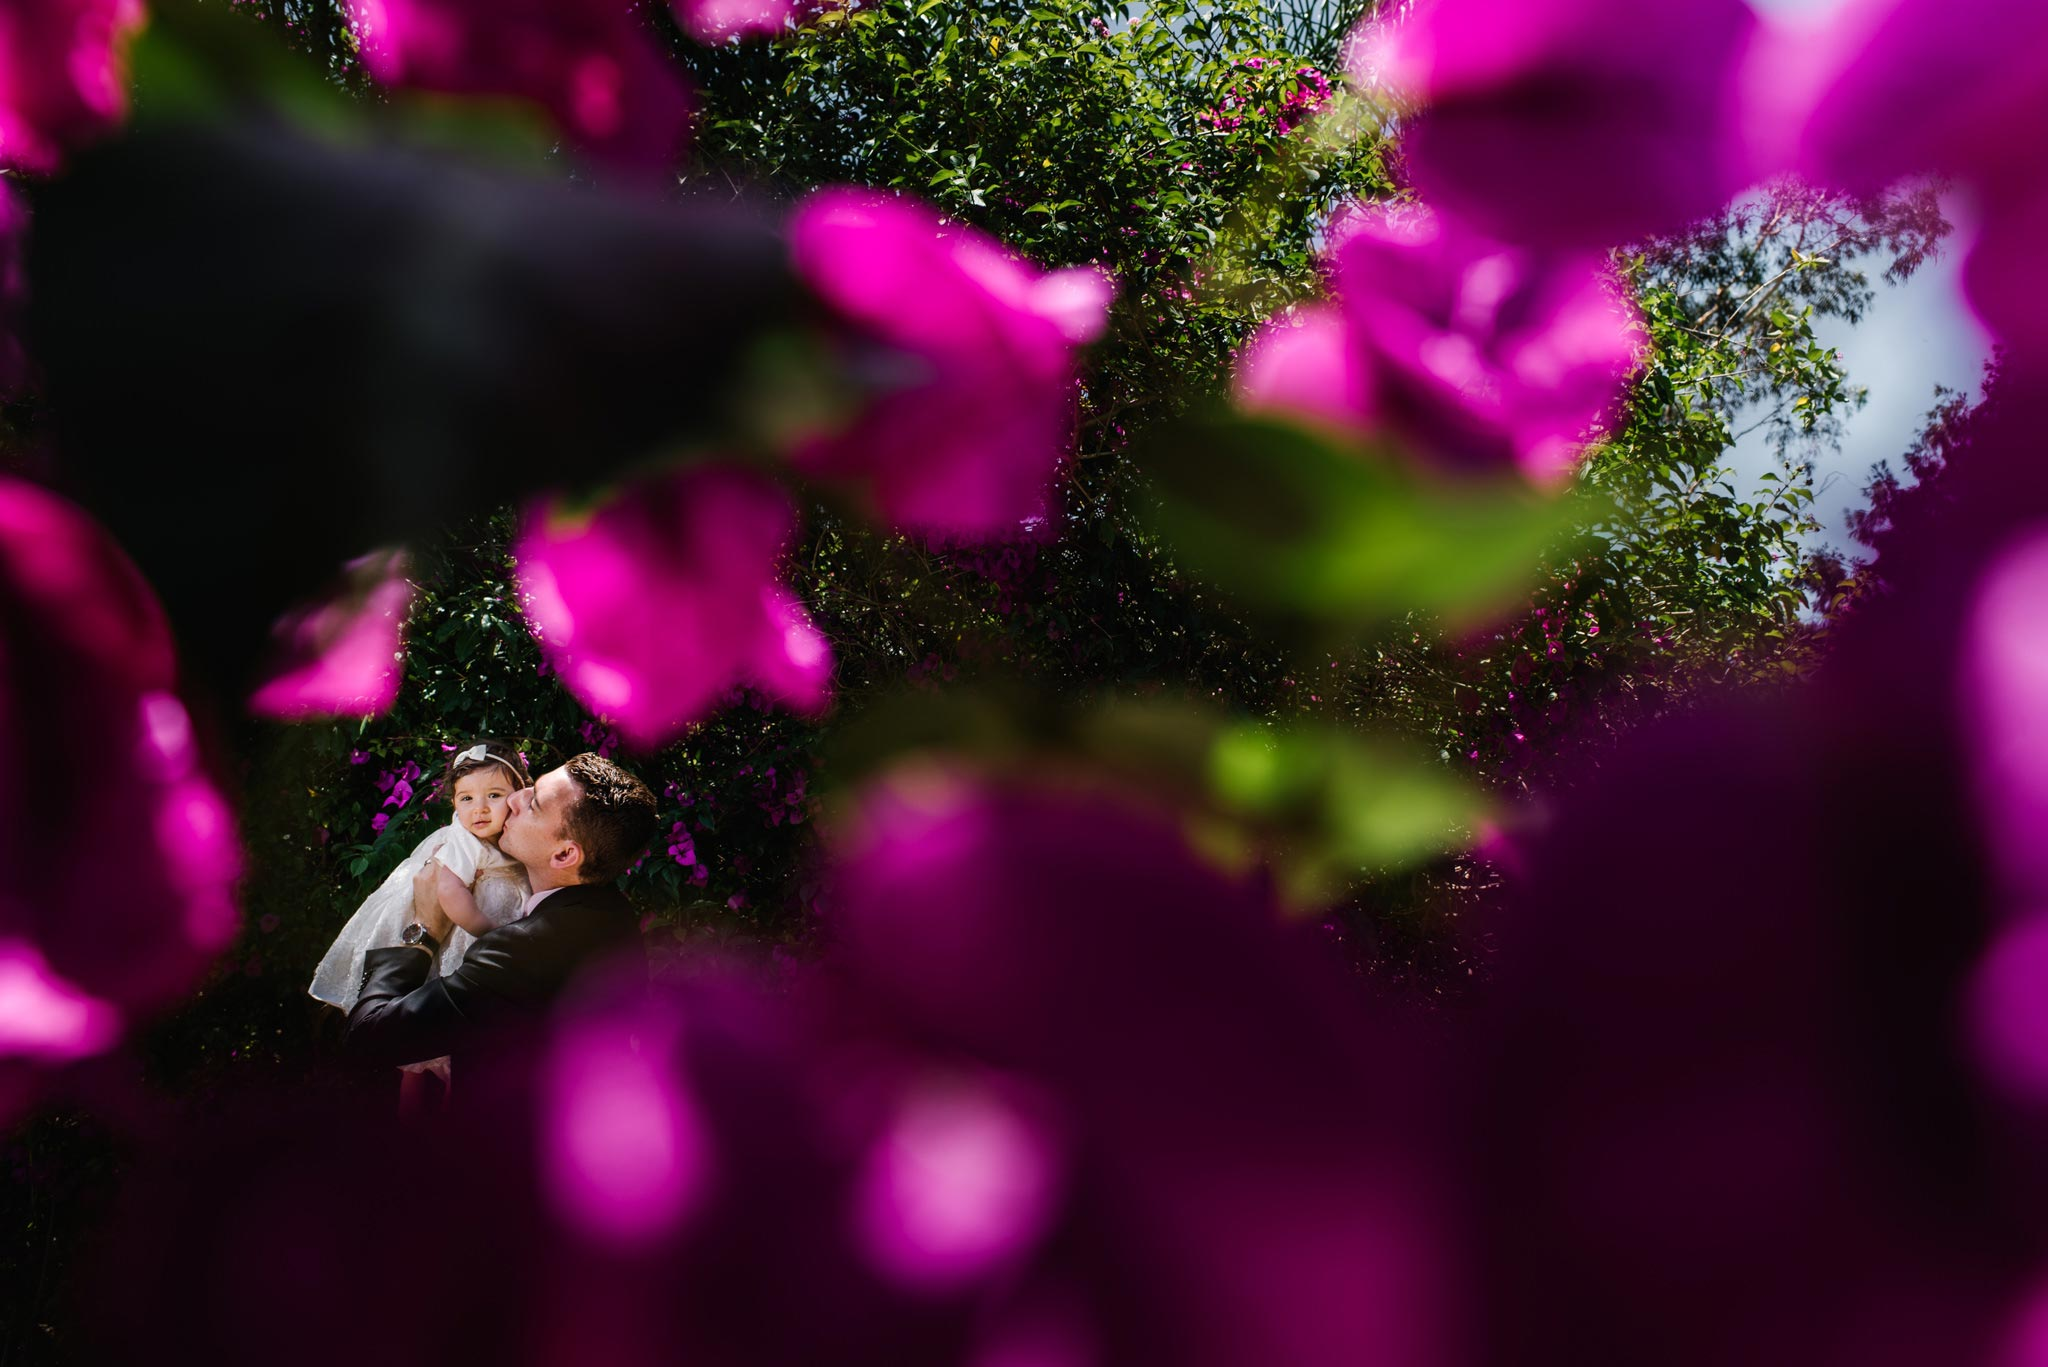 Father and daughter in gardens at Oatlands House christening venue